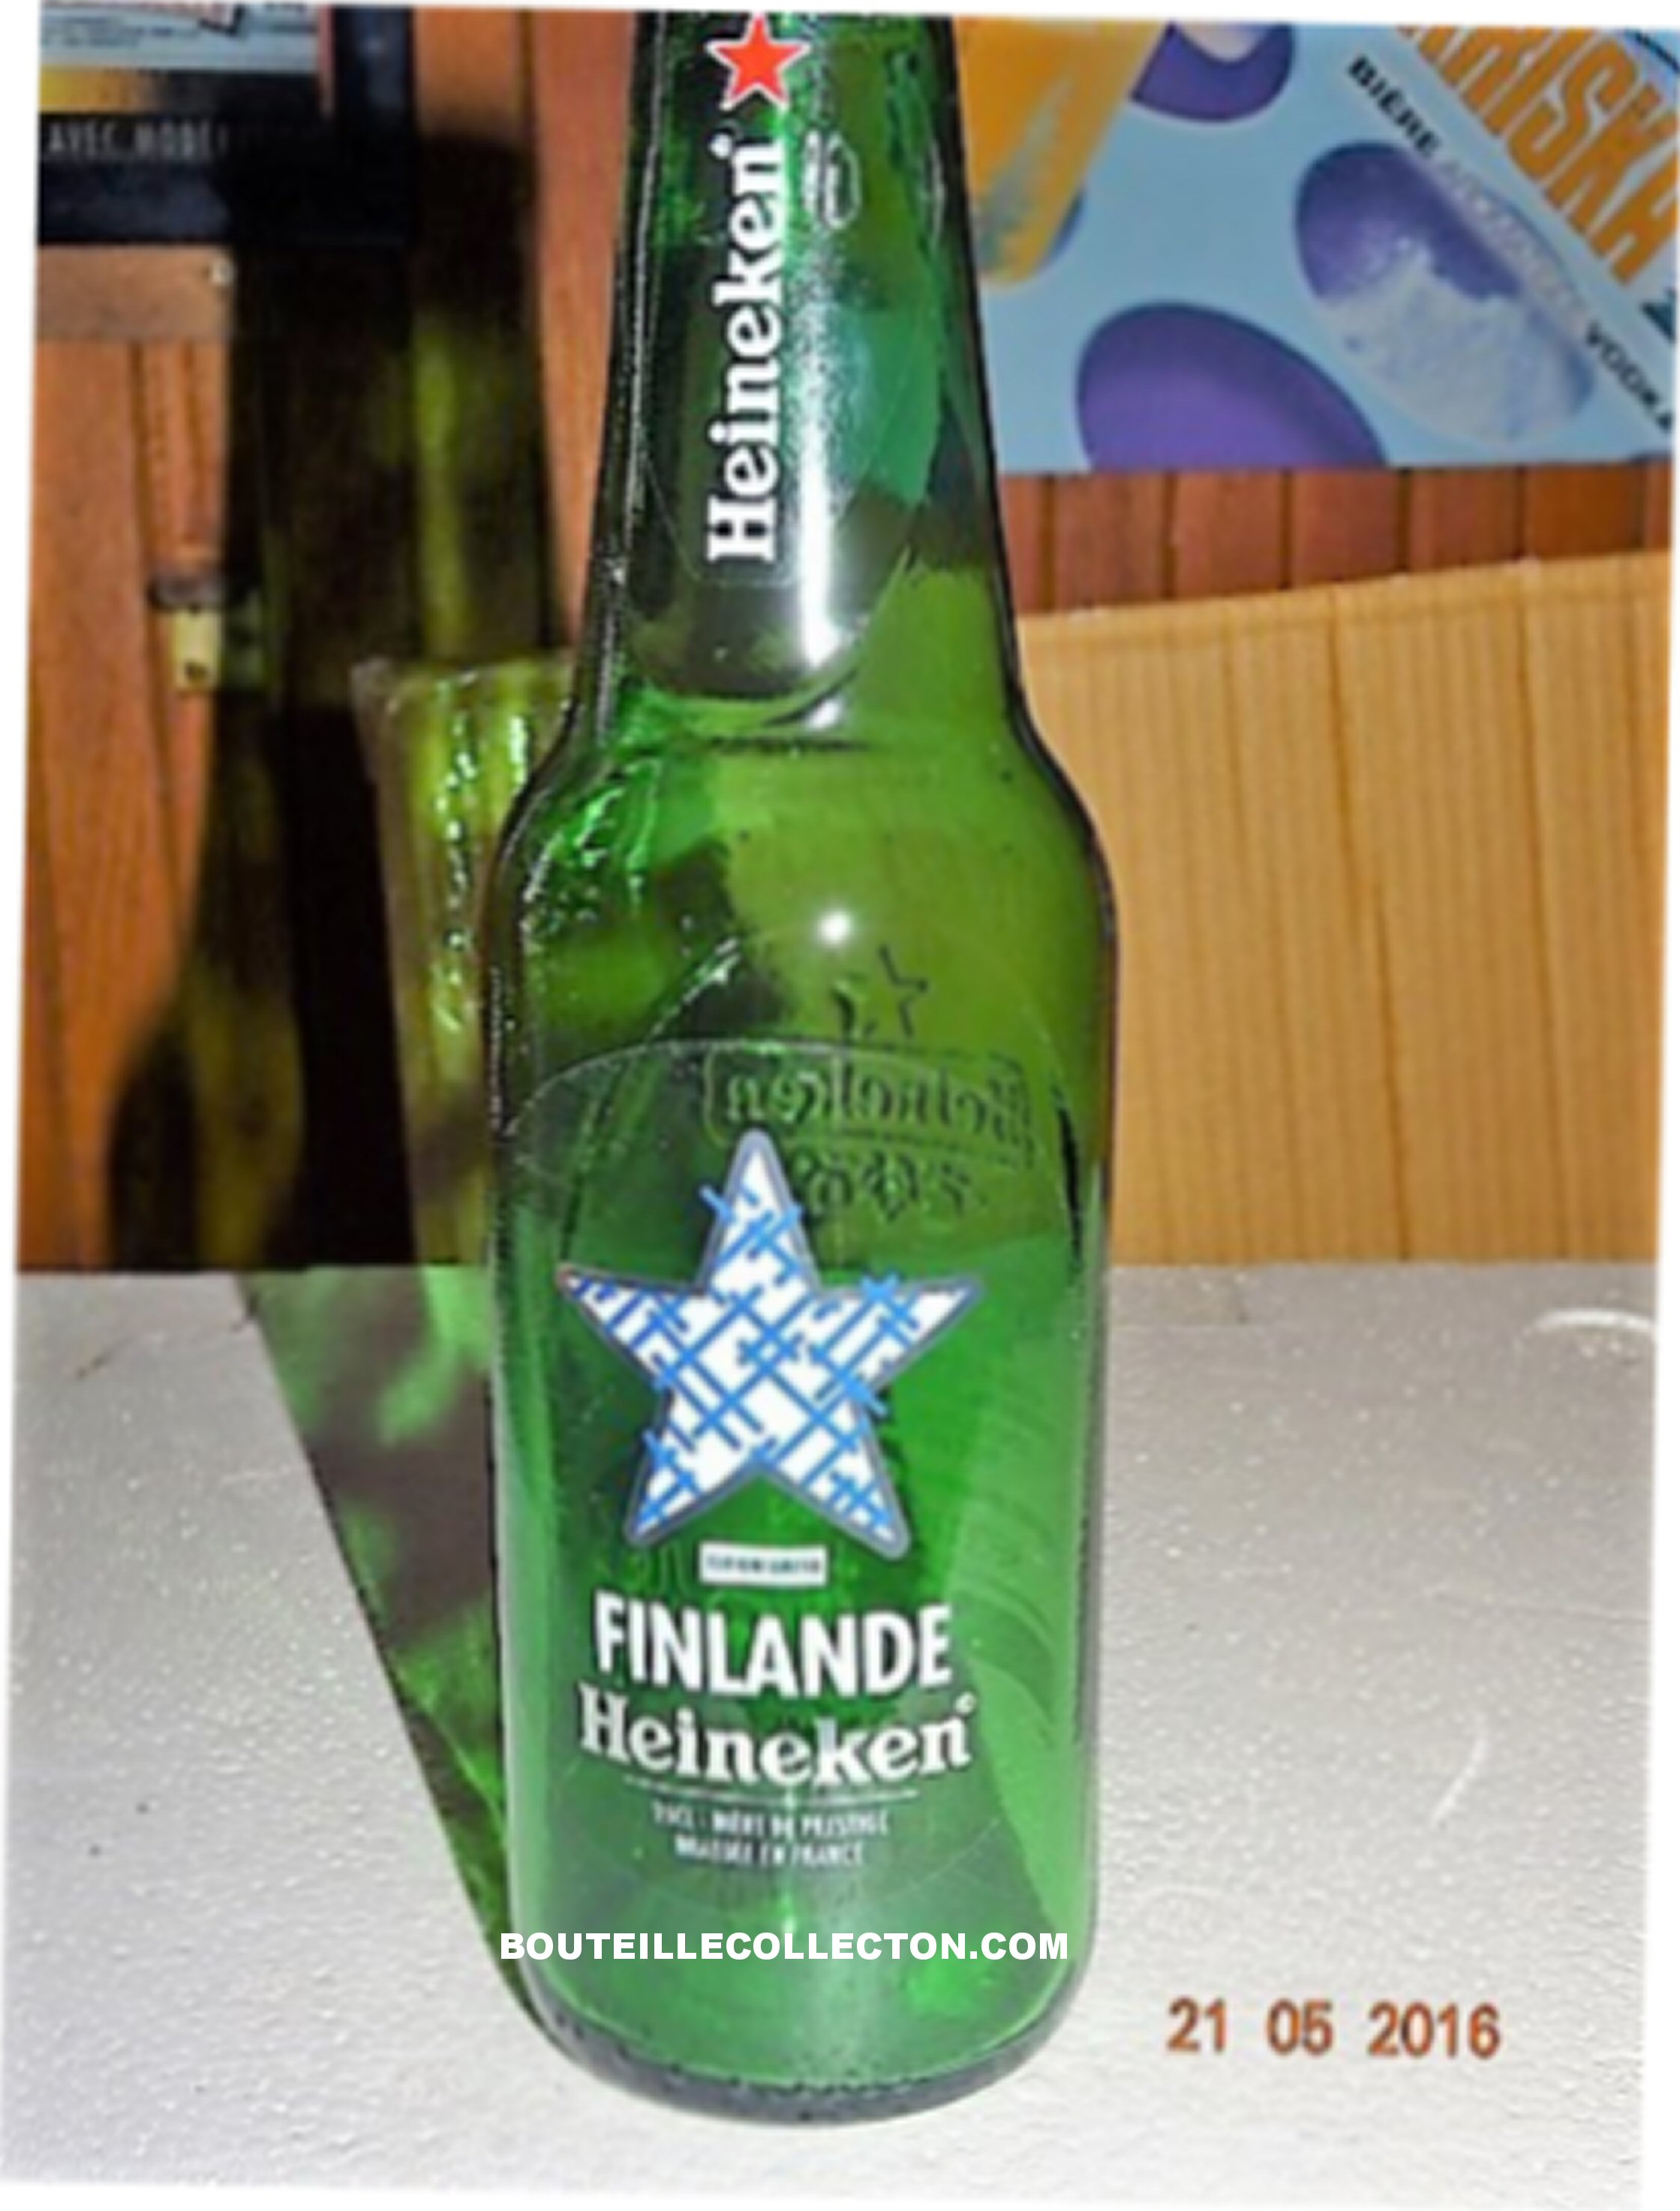 AG HEINEKEN COUNTRIES EDITION FINLANDE 2016 25CL B.jpg